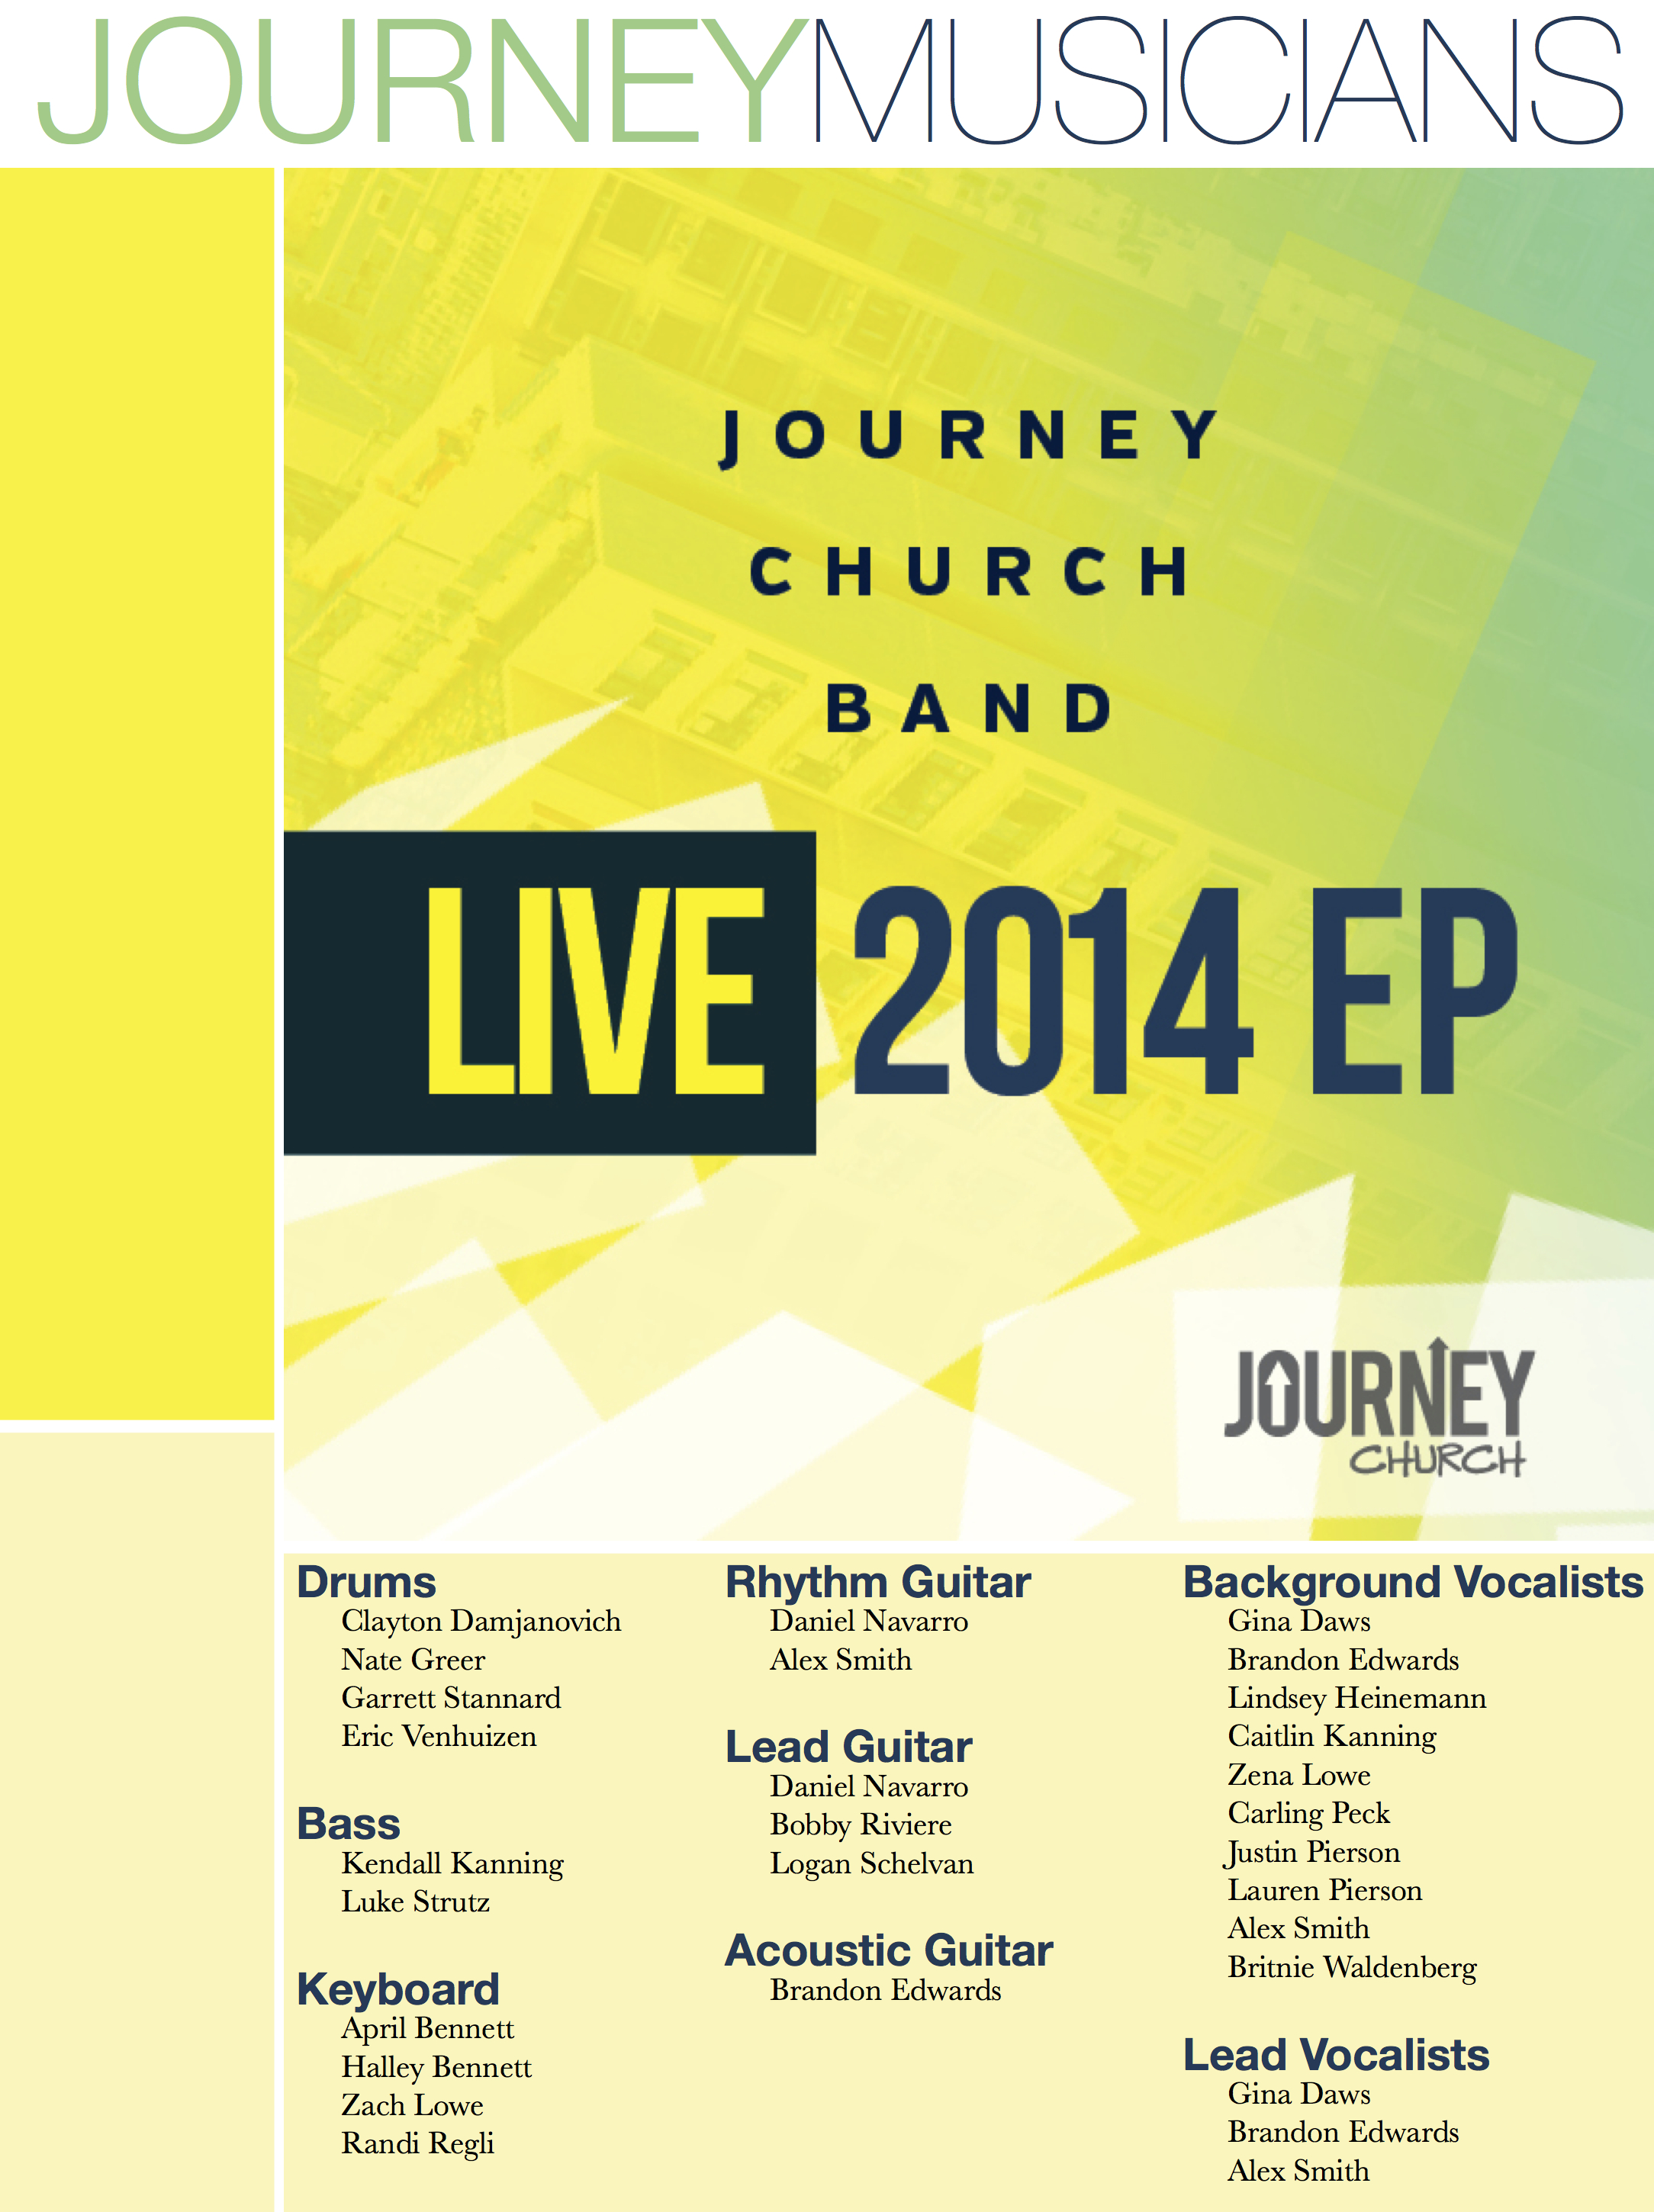 Journey_Chruch_Band_Live_2014_EP_Musicians.jpeg